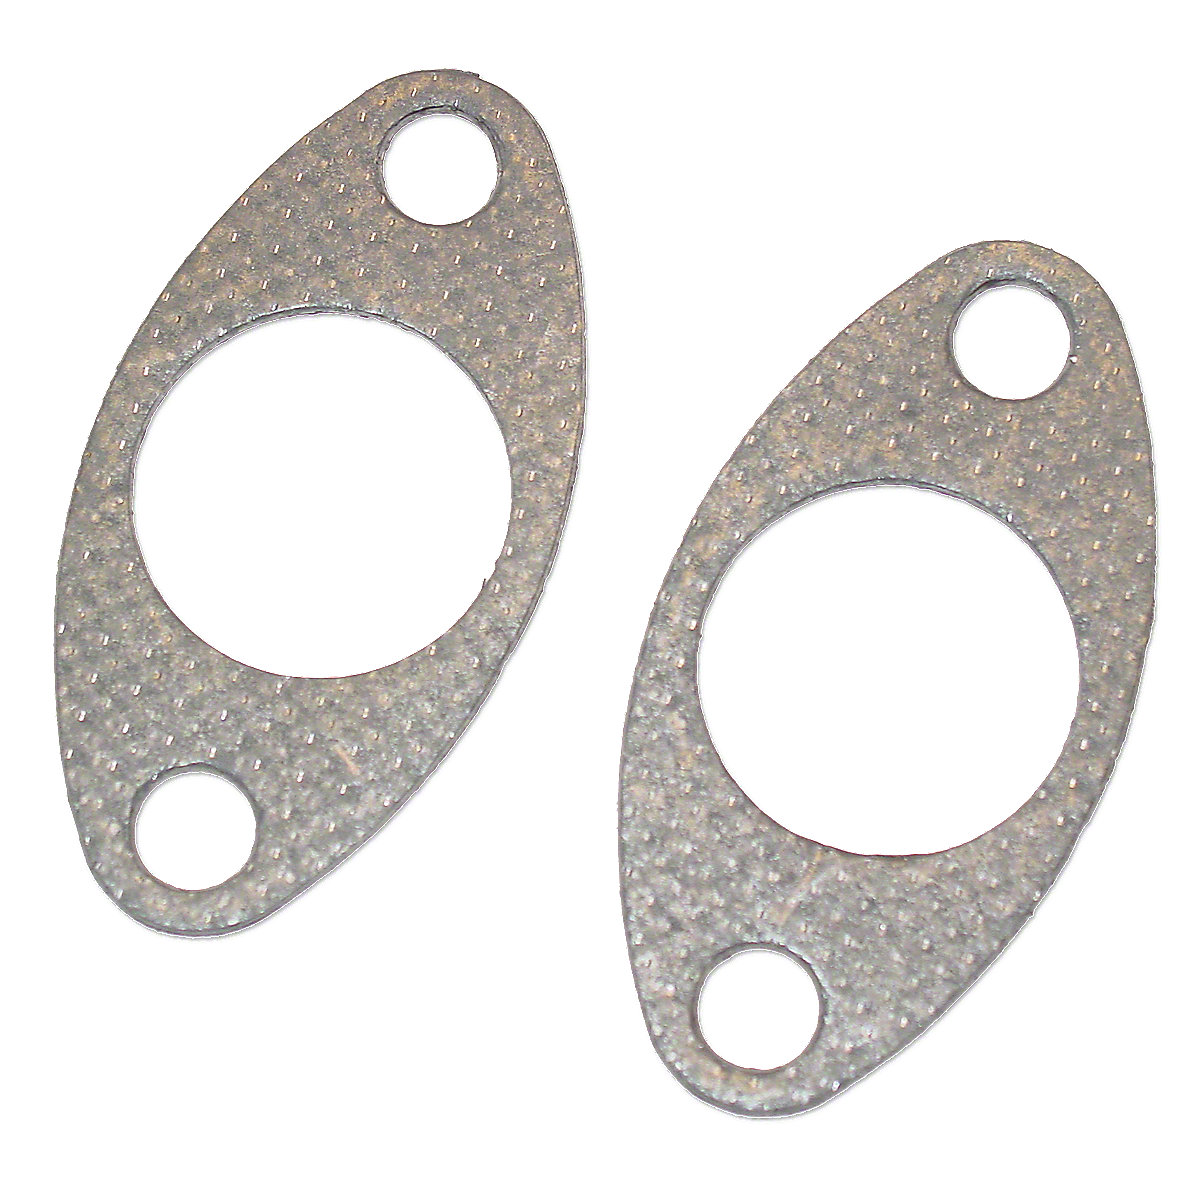 4 Cylinder Manifold End Gaskets For Massey Ferguson: 2000, 40, 50 With Continental Gas Engines.